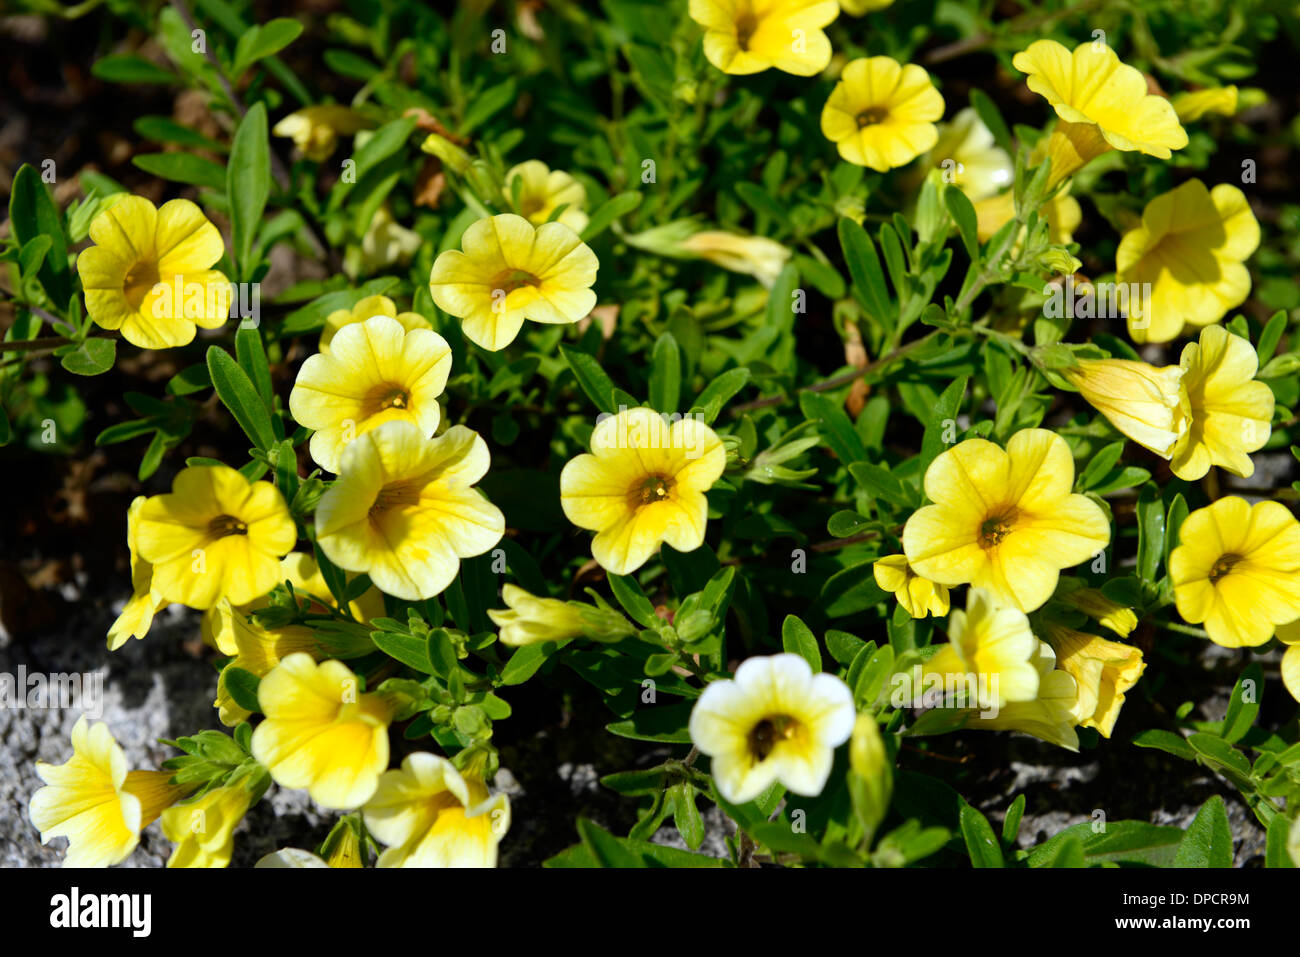 Flower bacopa stock photos flower bacopa stock images alamy bacopa yellow flowers flowering bed border bedding flower plant planting annual stock image izmirmasajfo